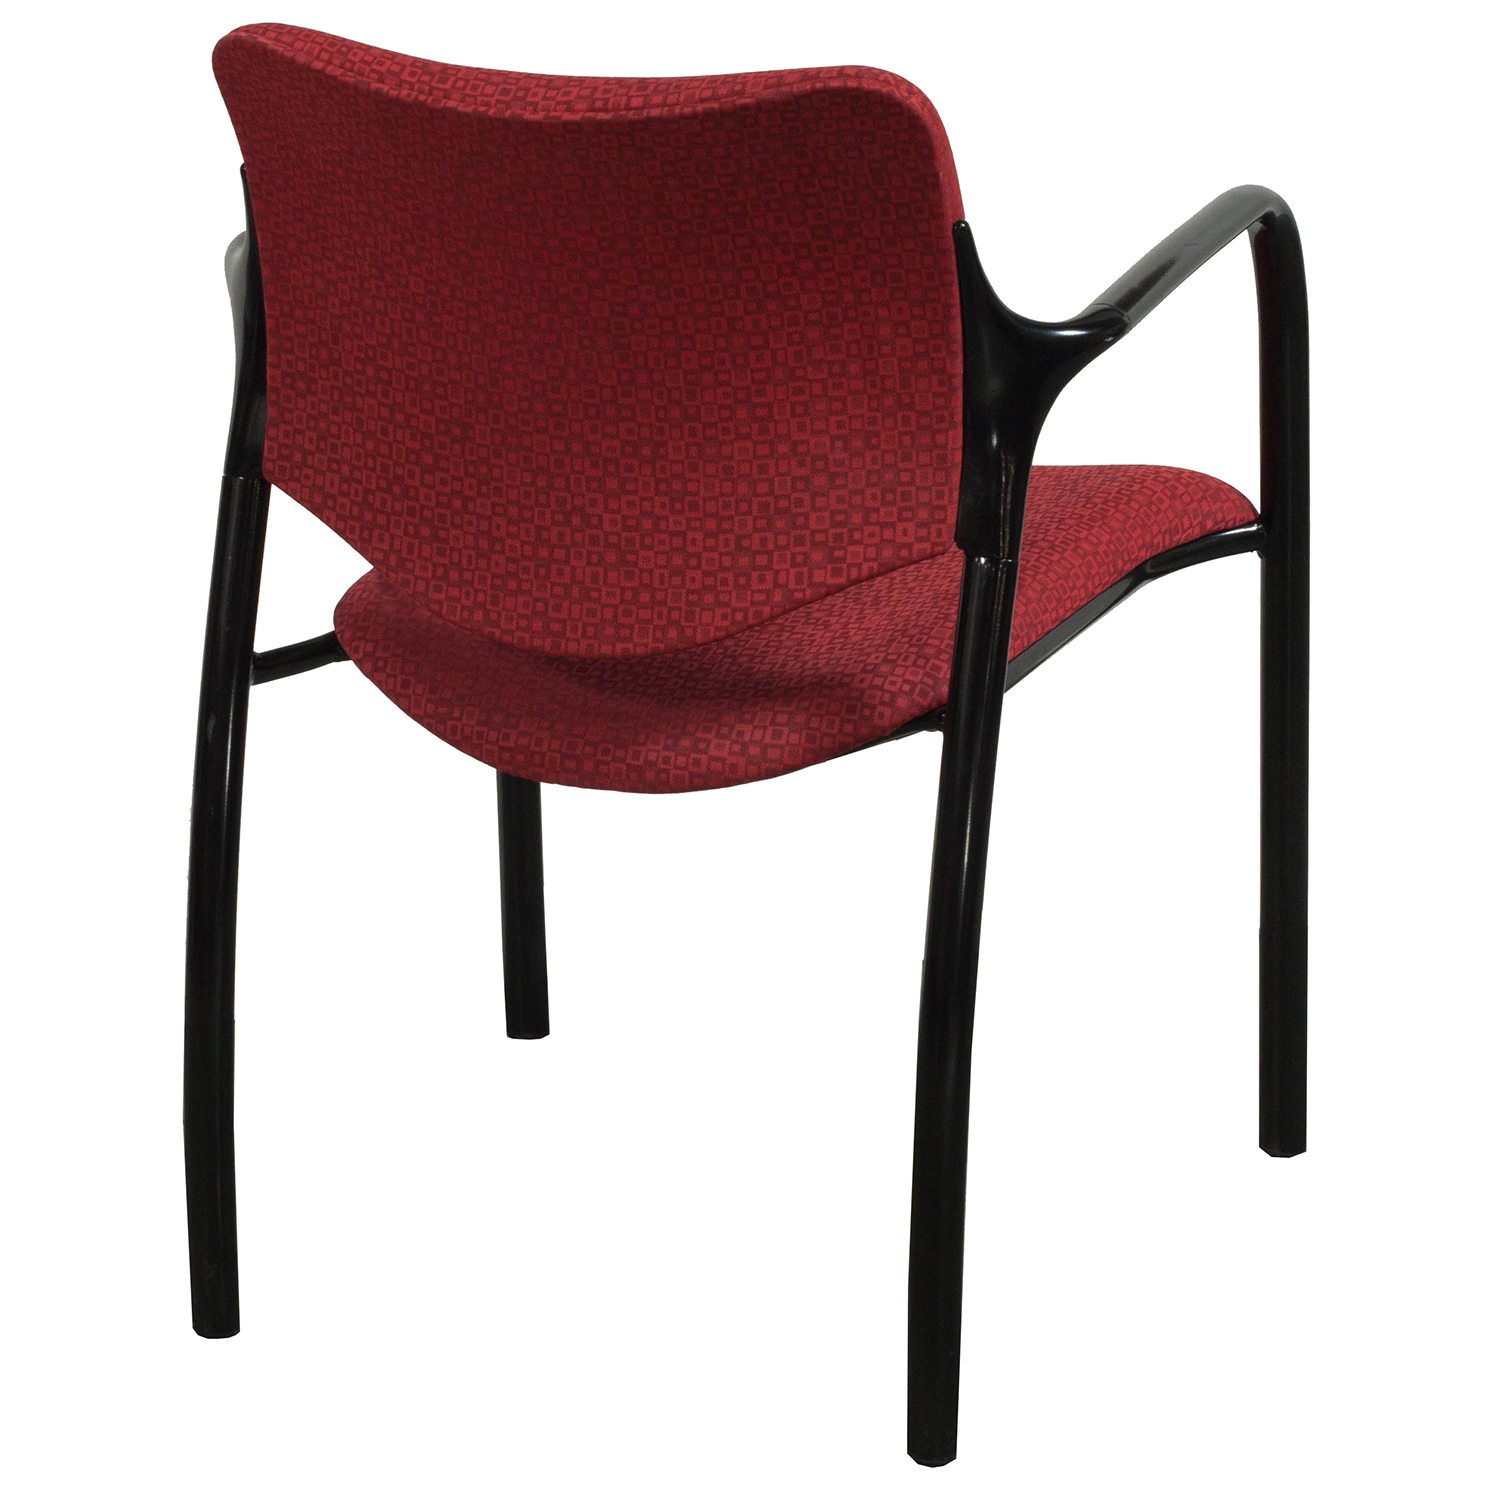 herman miller stacking chairs ergonomic chair grainger aside used stack red pattern